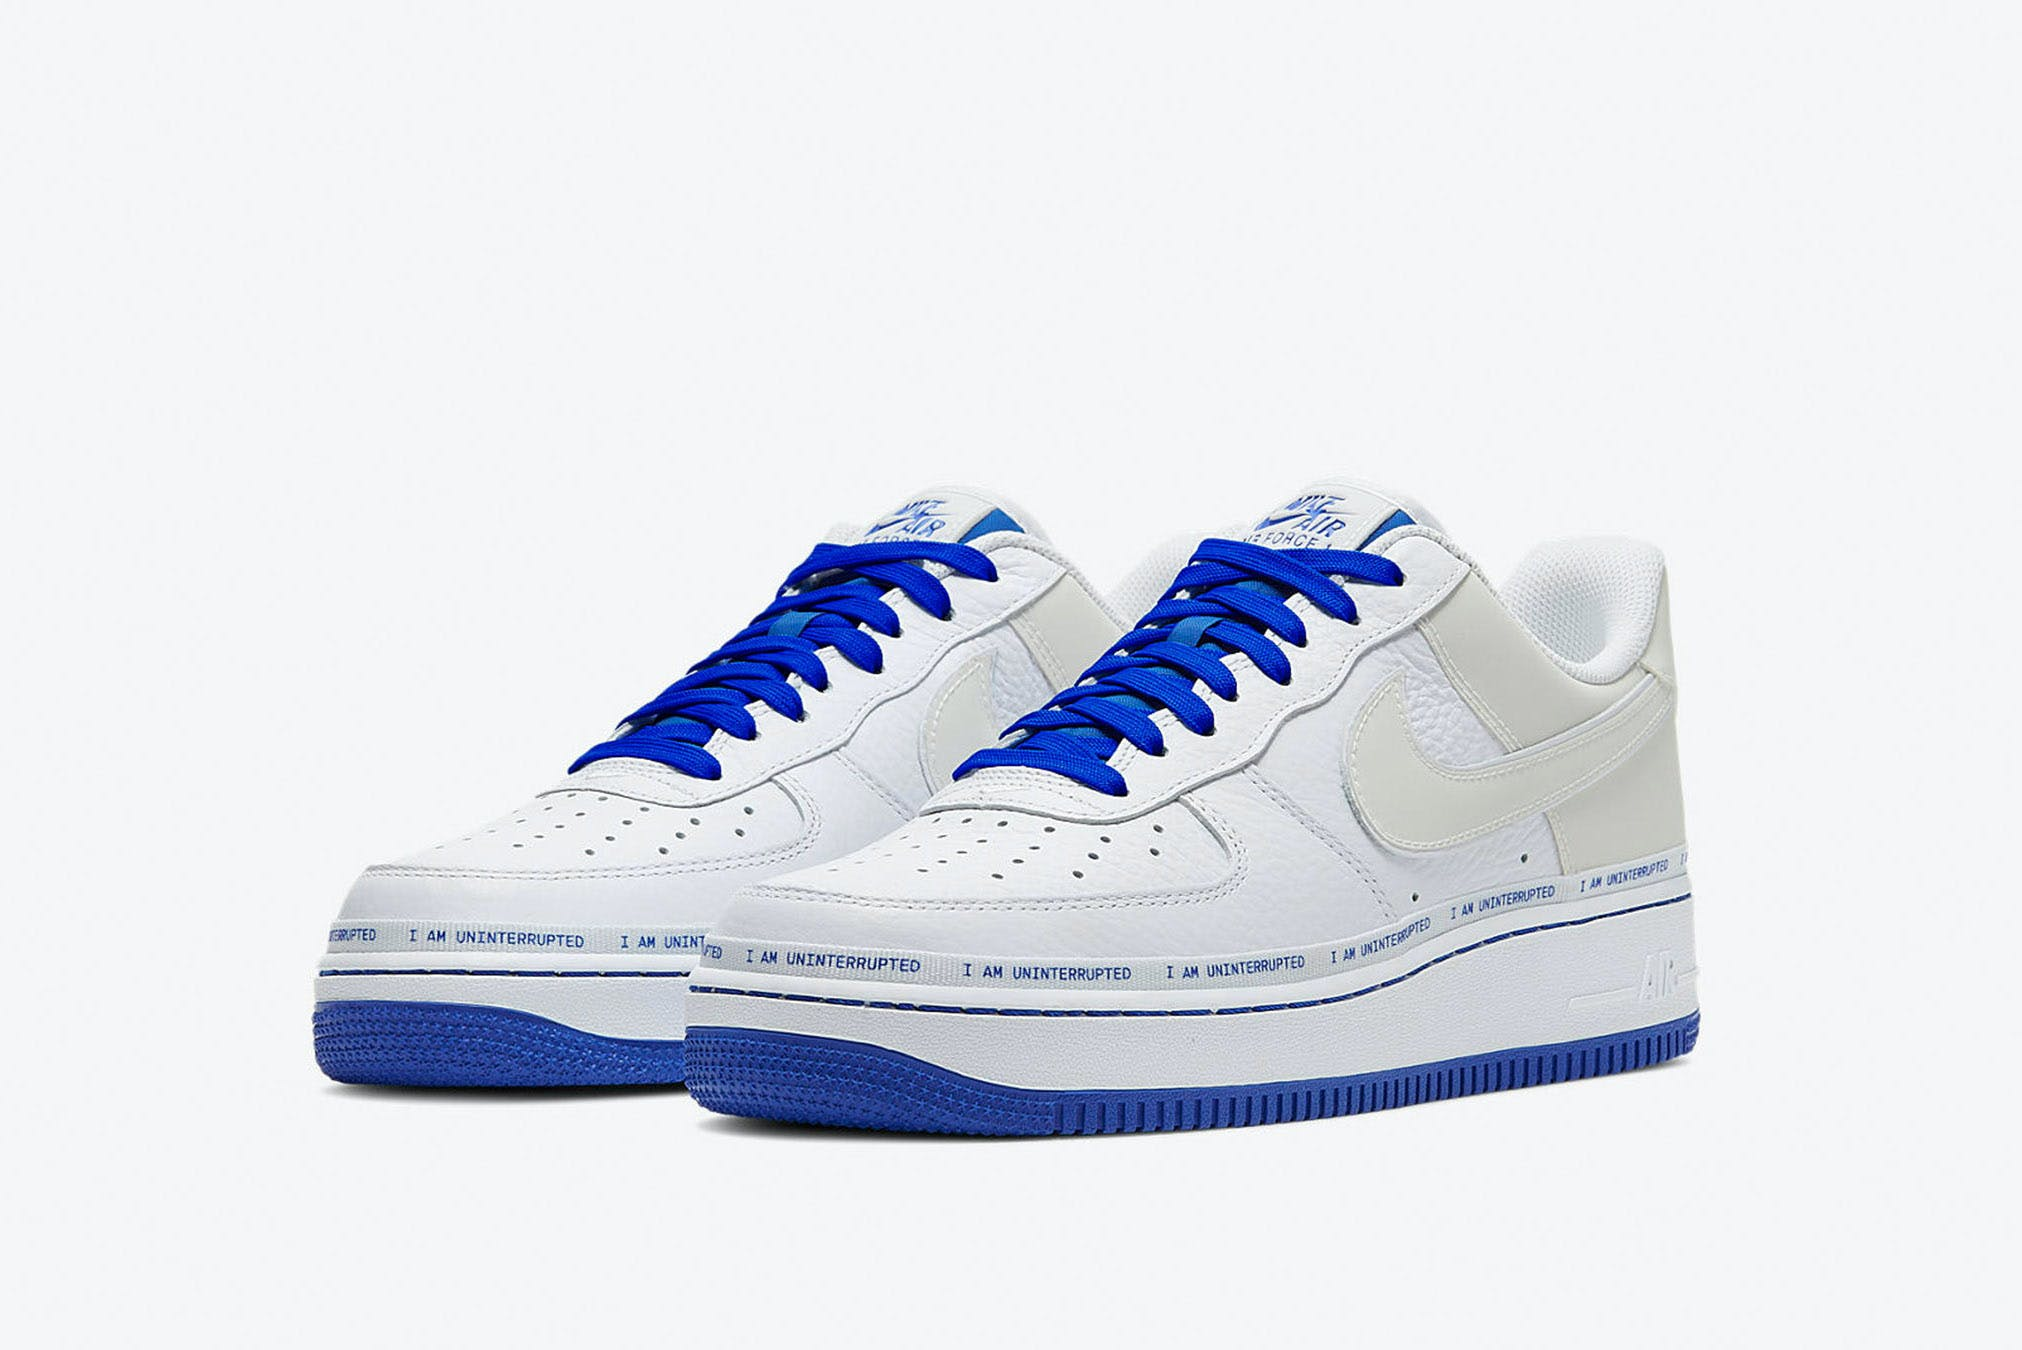 Nike x LeBron James Air Force 1 MTAA - CQ0494-100